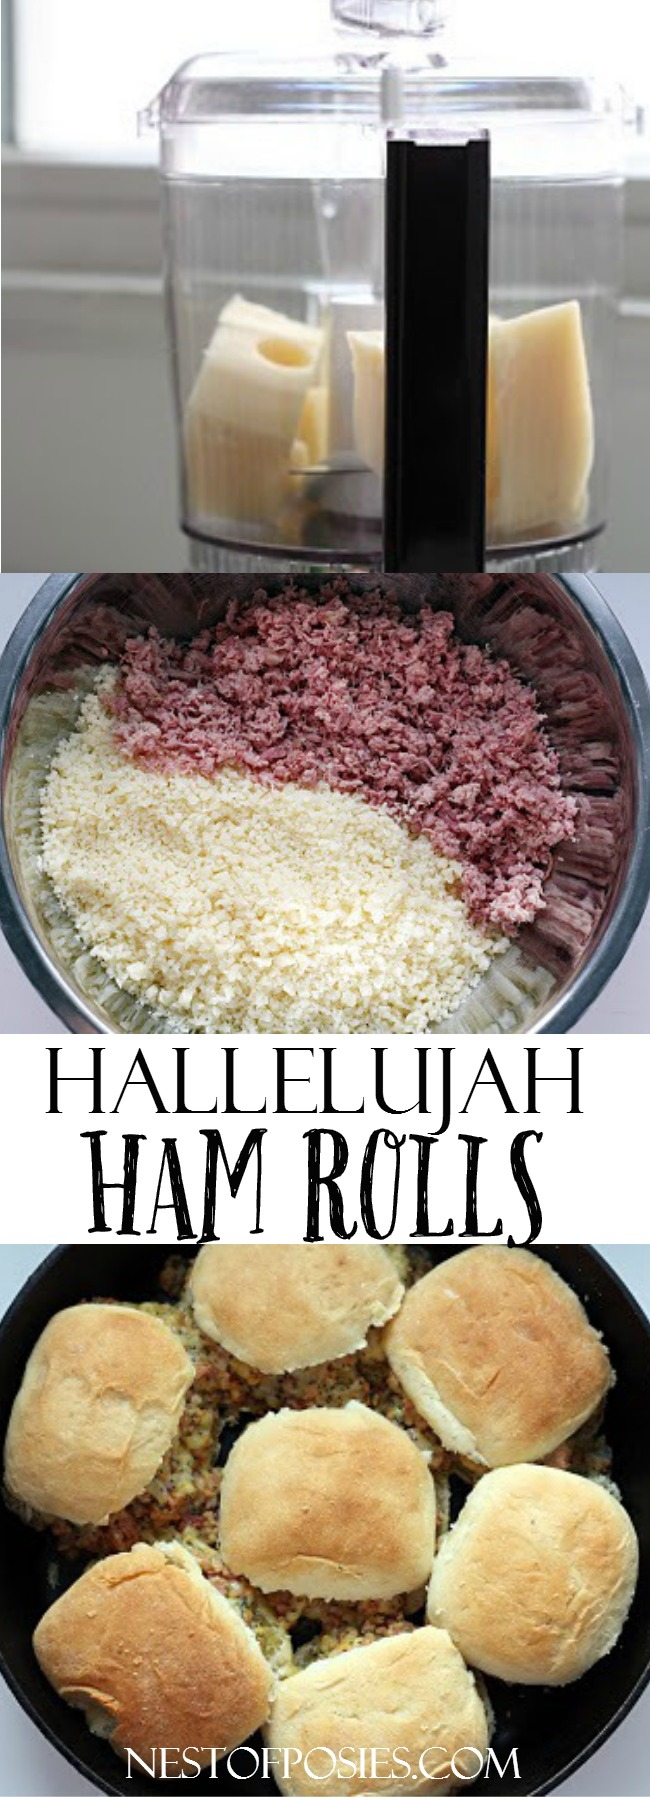 Hallelujah Ham Rolls - the perfect thing to make with your leftover ham!  They are so good, warm & melt in your mouth